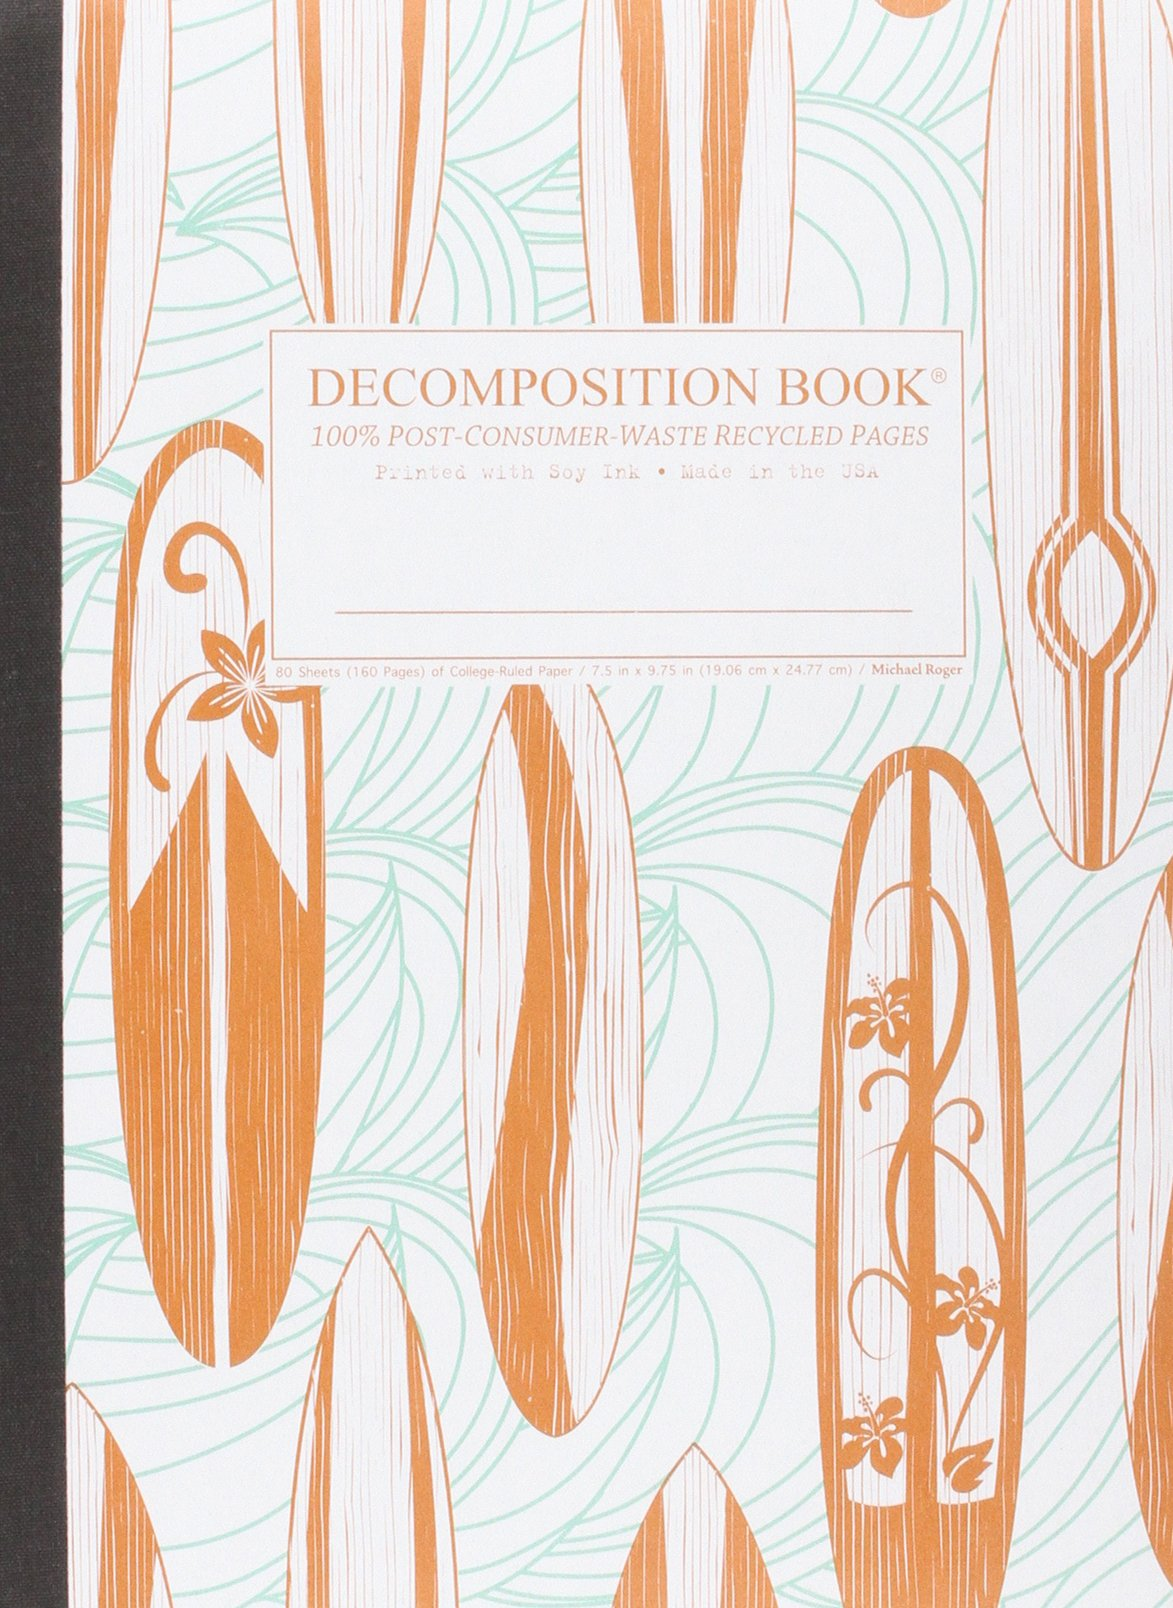 Read Online Classic Surfboards Decomposition Book: College-ruled Composition Notebook With 100% Post-consumer-waste Recycled Pages ebook